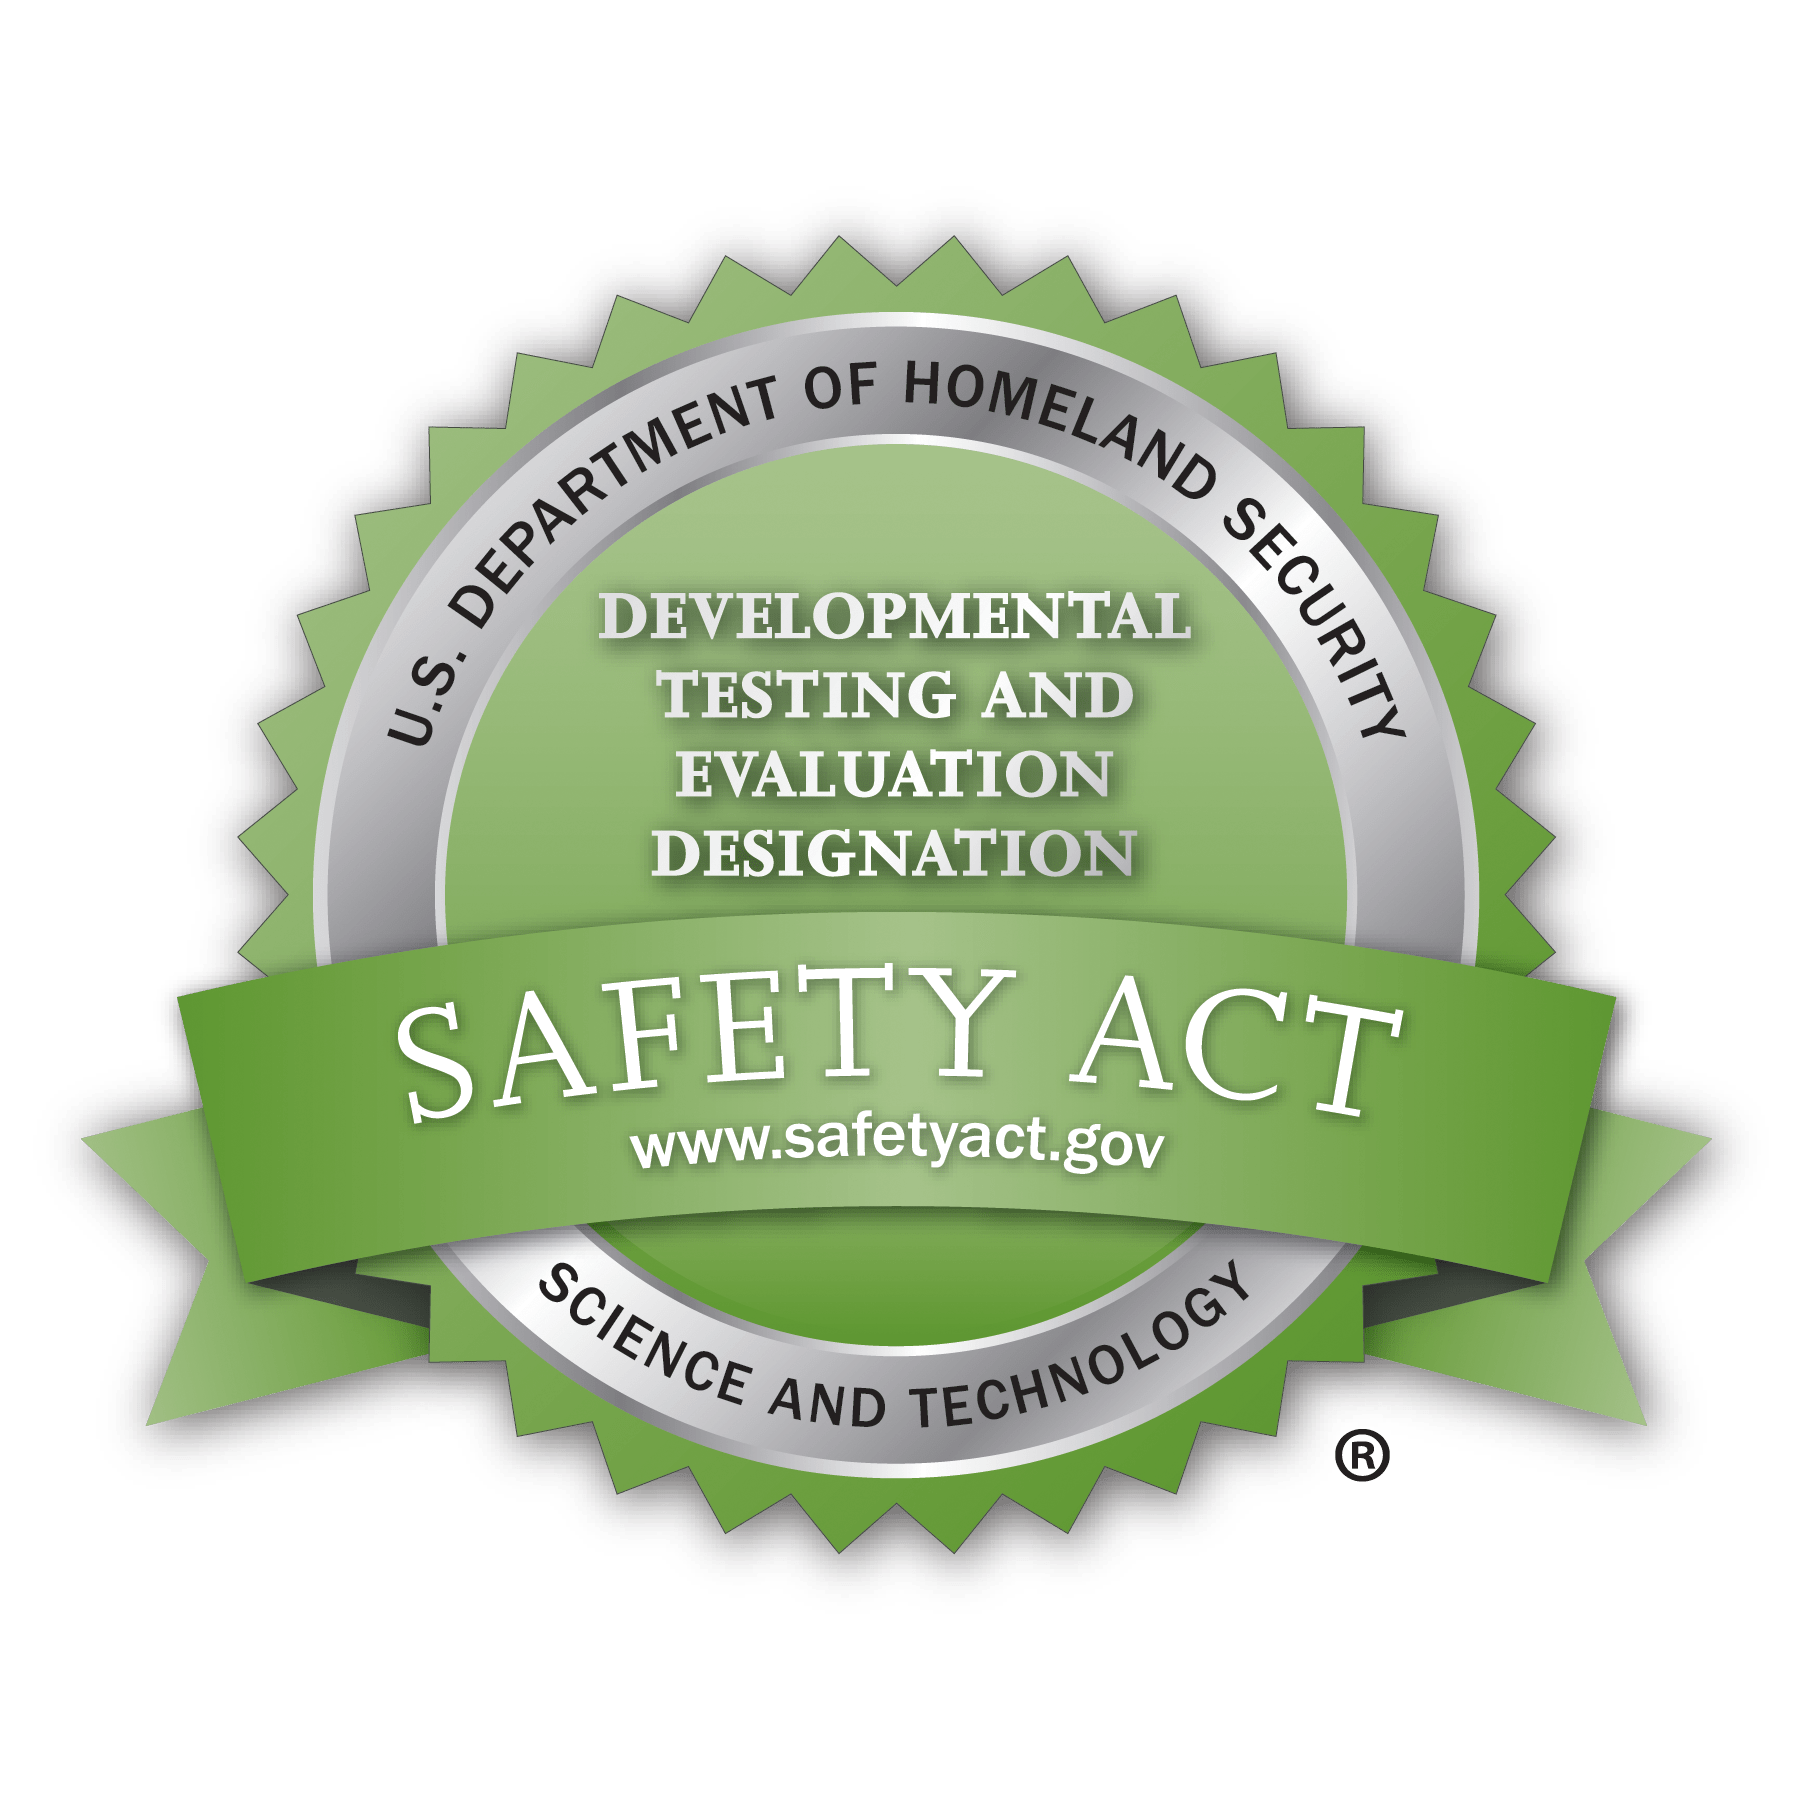 Department of Homeland Security Safety Act Certified